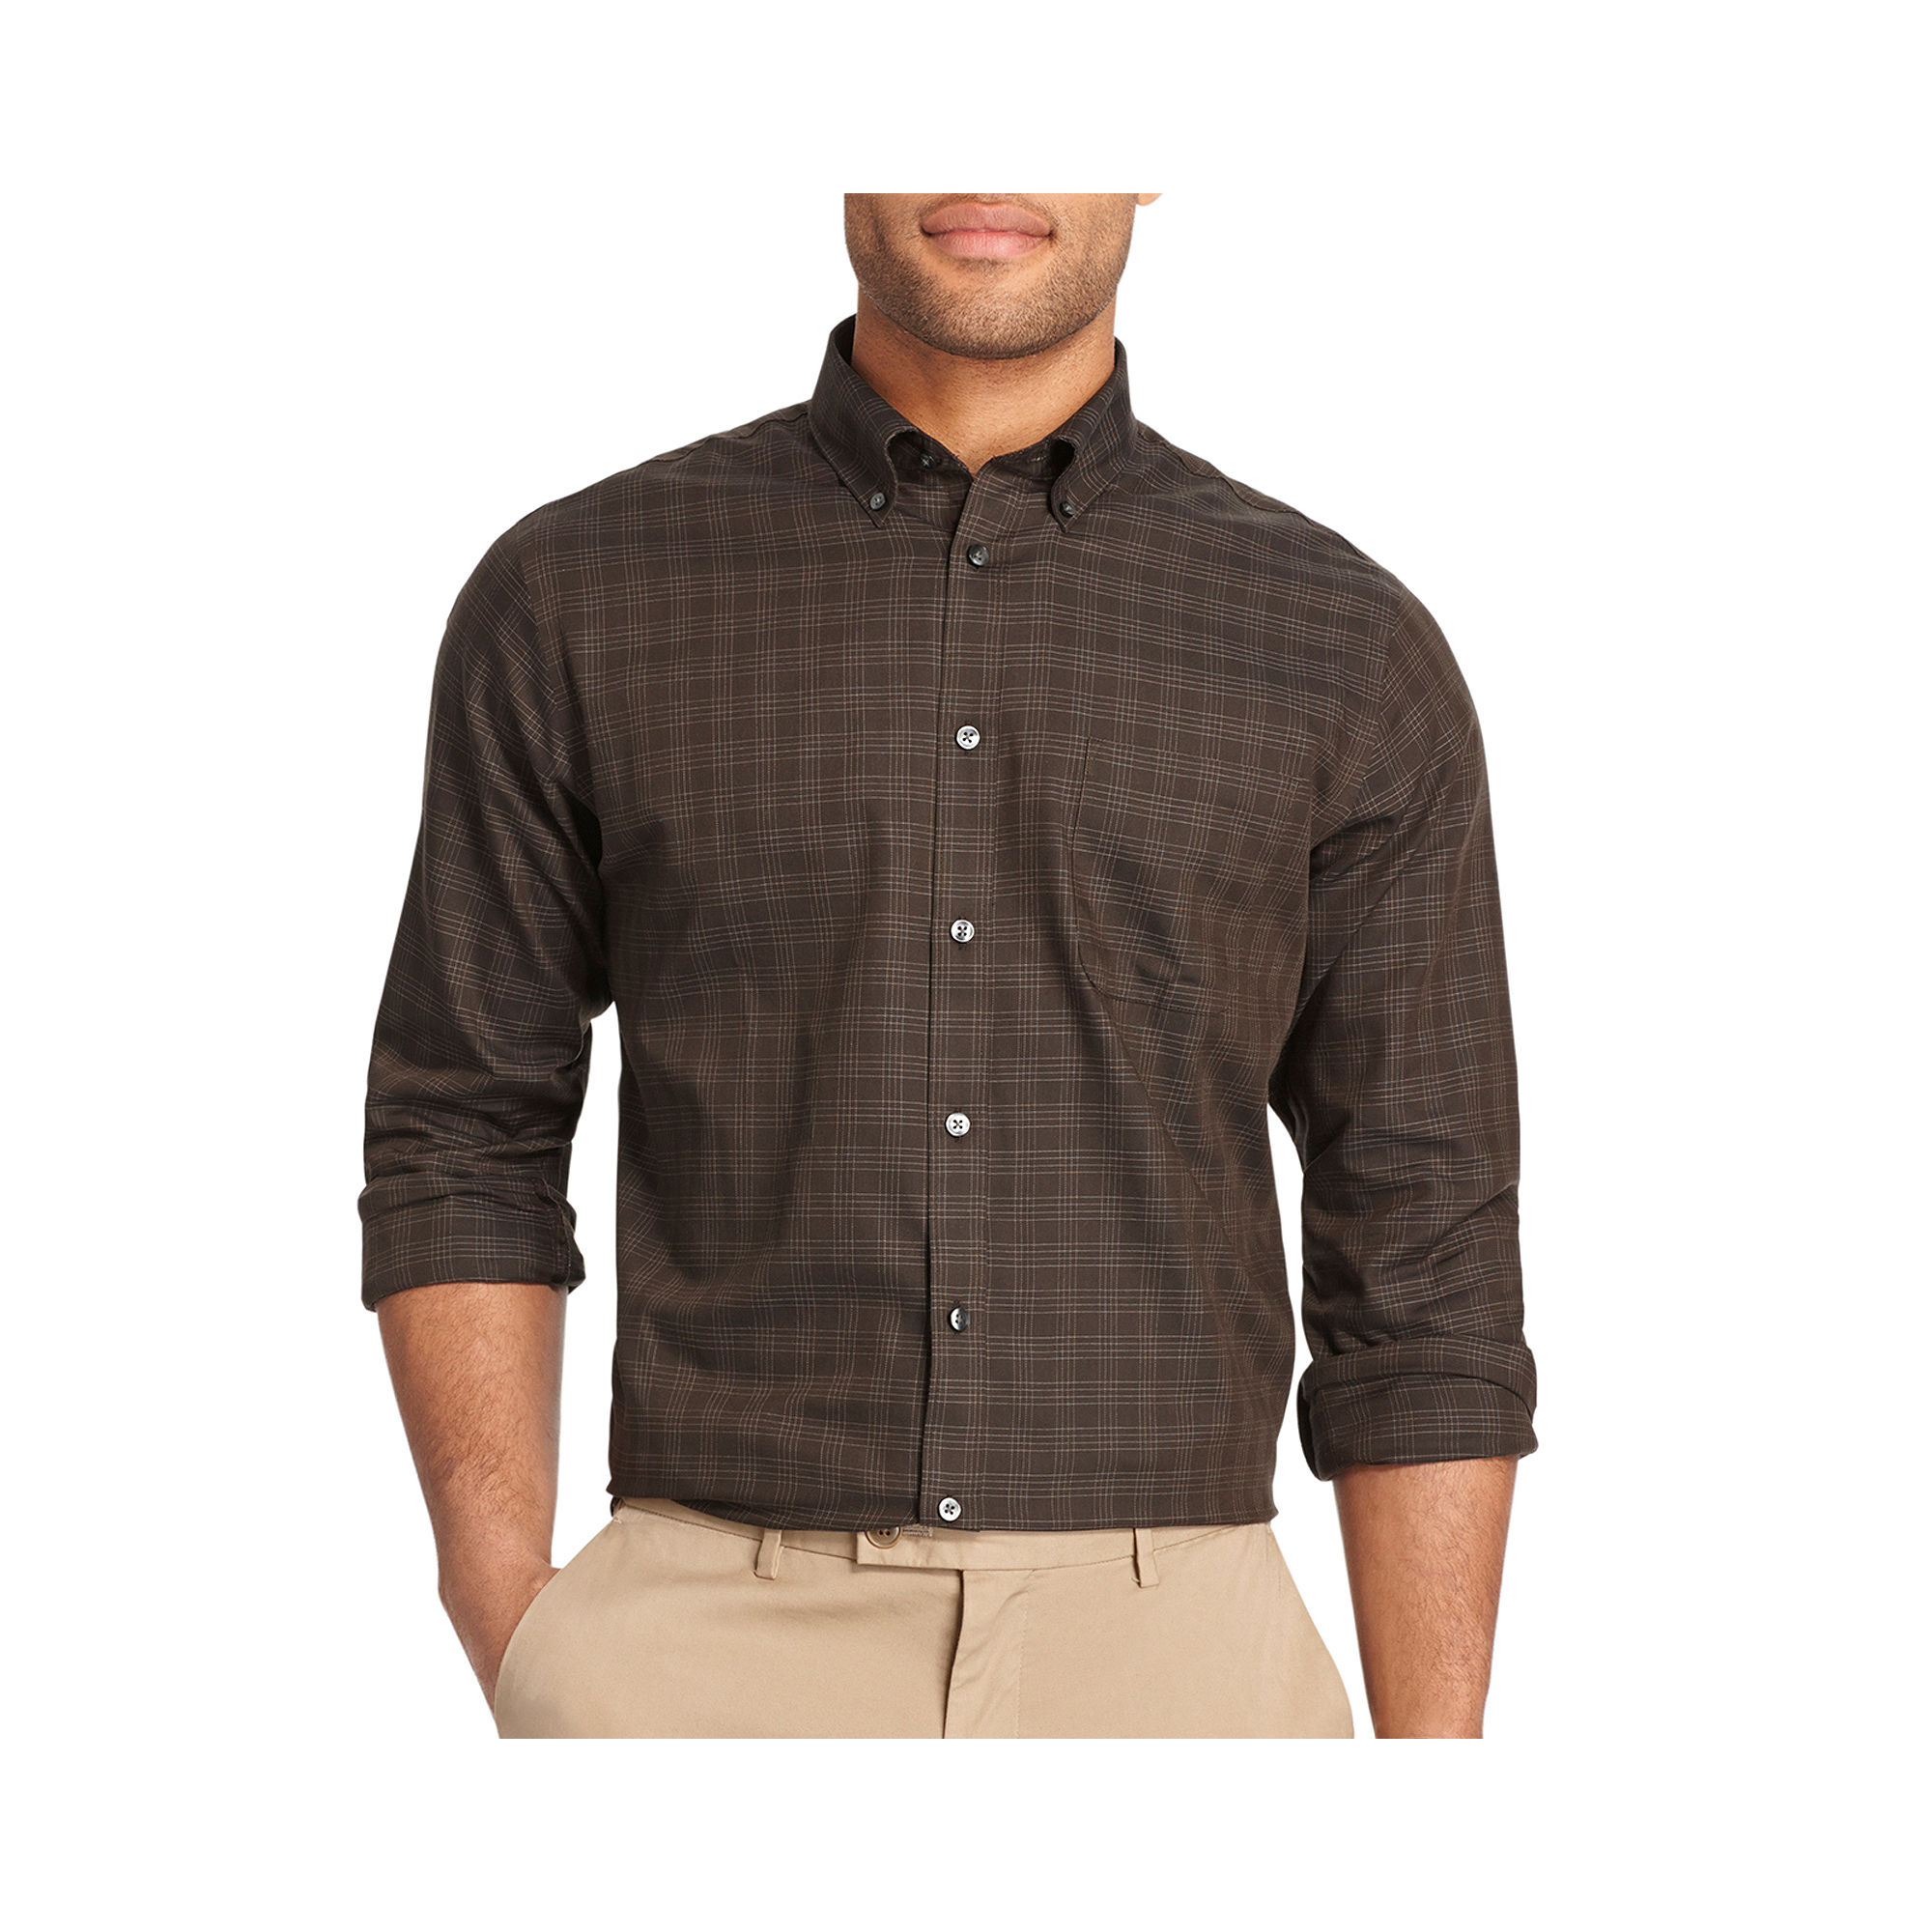 Upc 013282716910 Van Heusen No Iron Windowpane Plaid